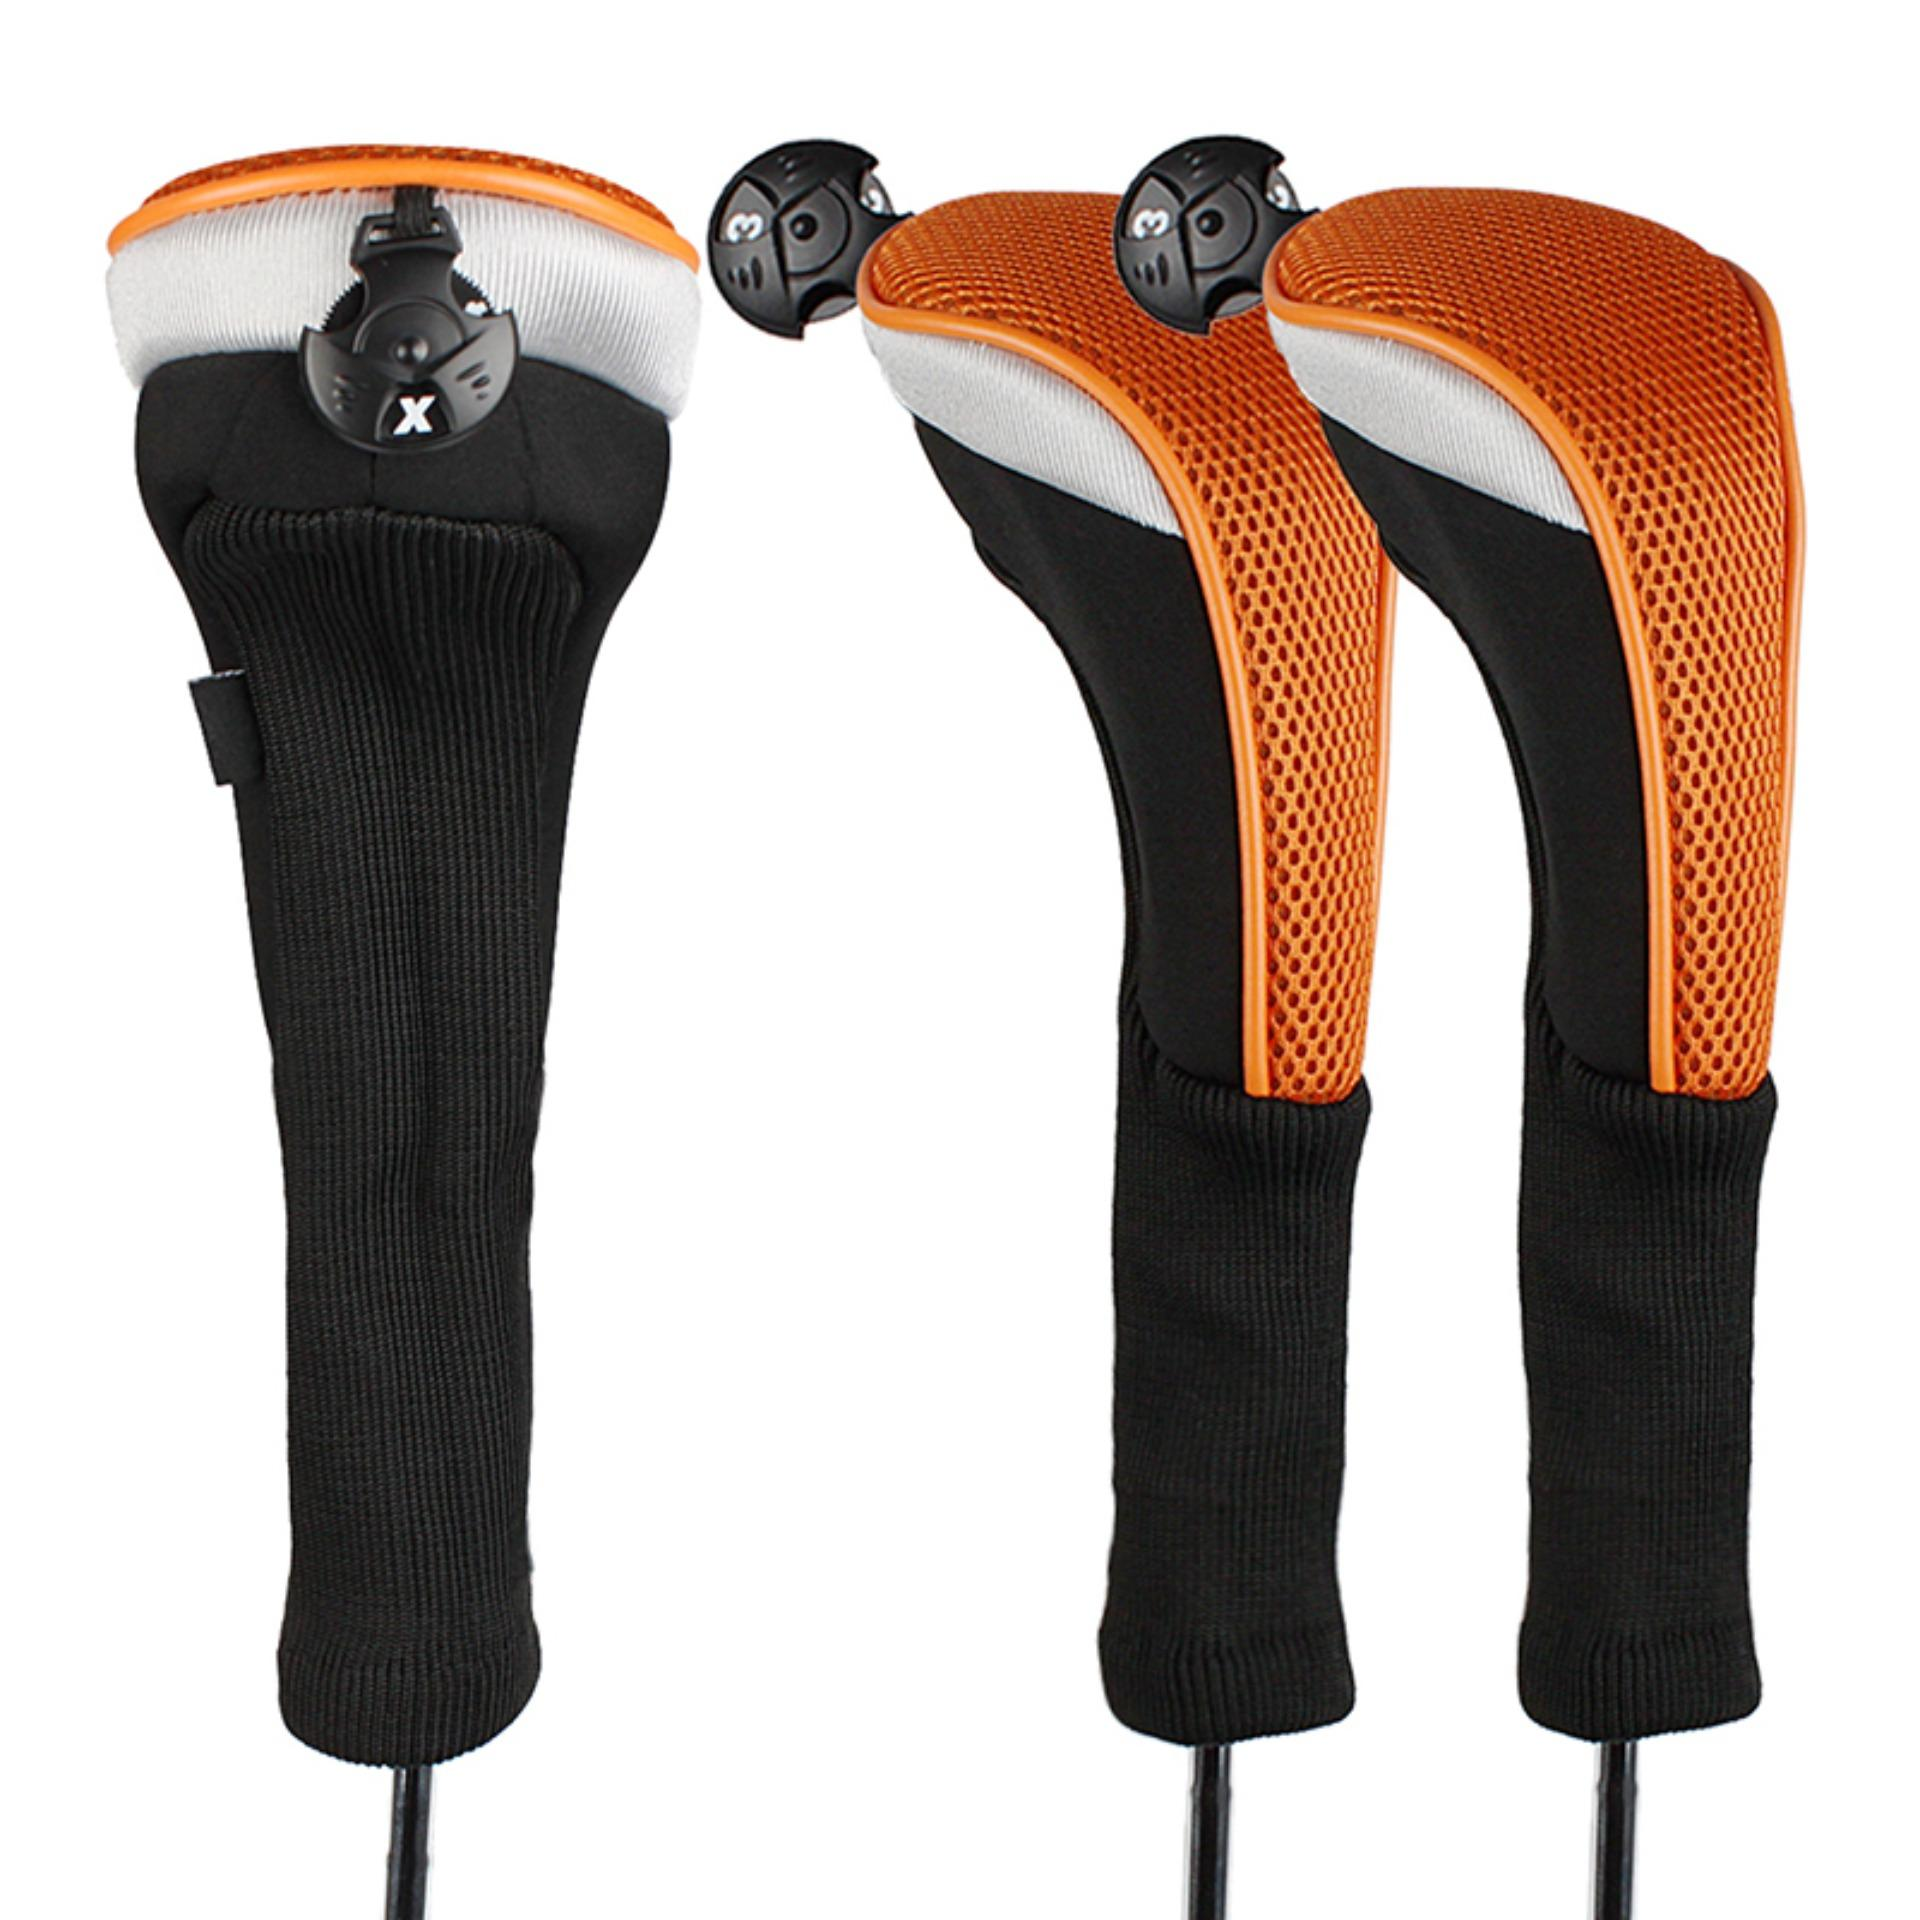 Spesifikasi Andux 3 Pcs Long Neck Hybrid Club Headcovers Golf Head Covers Dengan Interchangeable No Tag Ctmt 02 Orange Terbaru